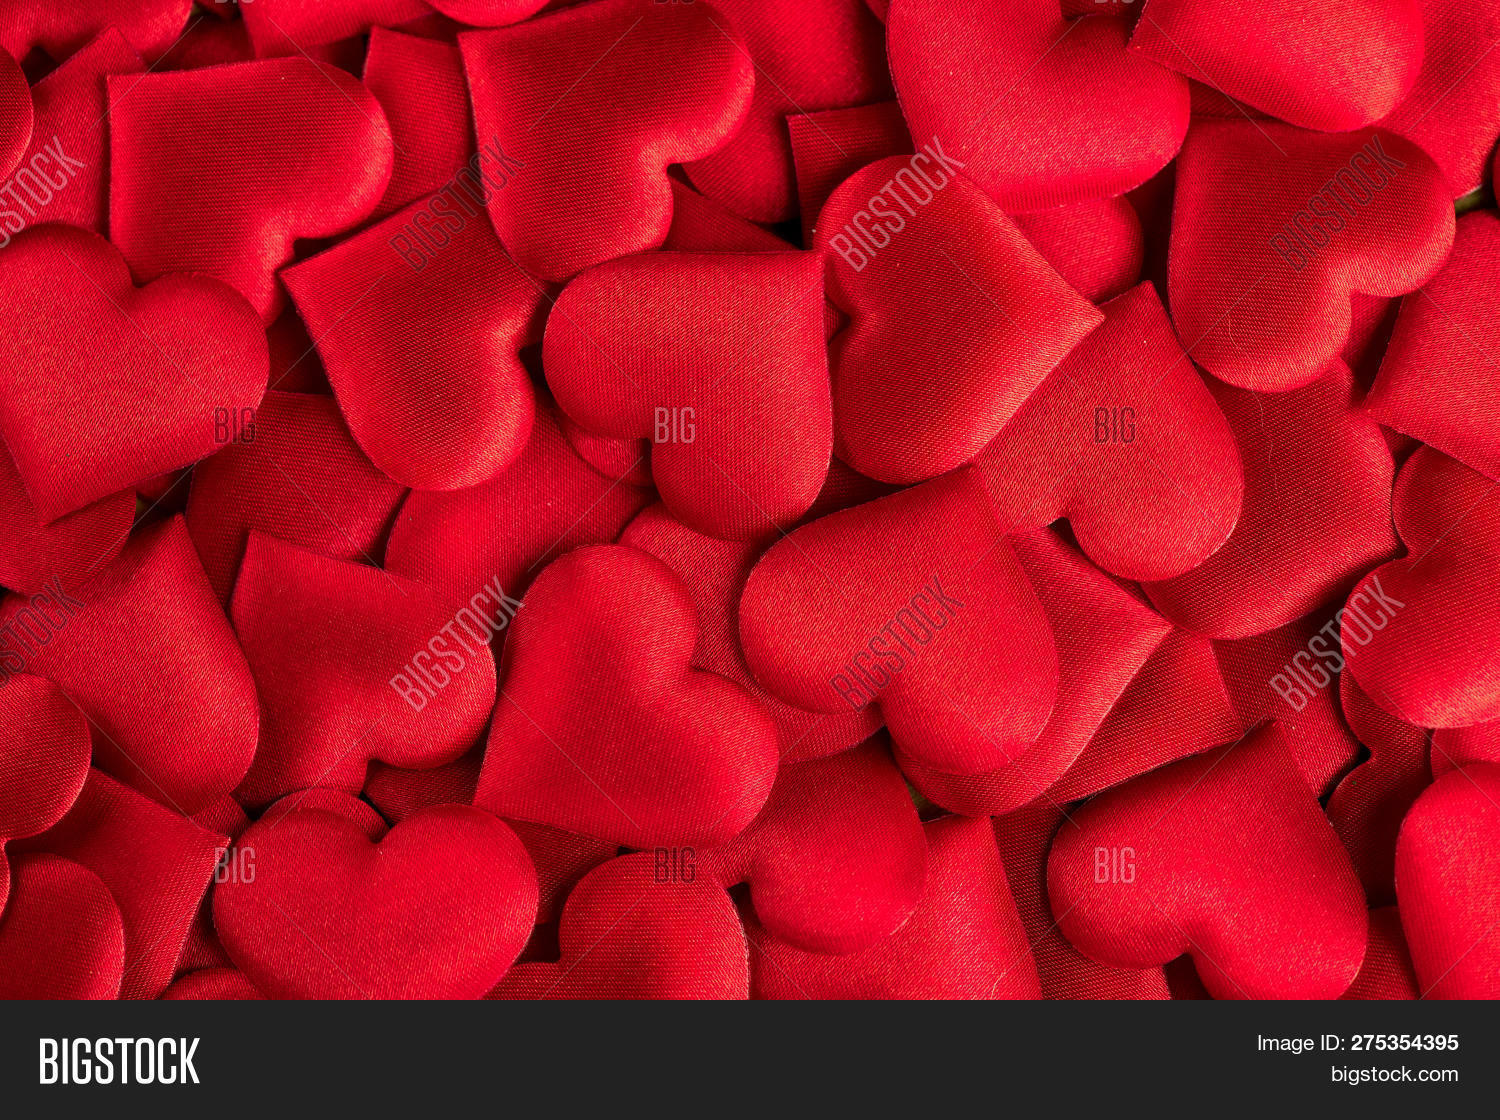 abstract,art,backdrop,background,beautiful,beauty,bright,celebration,closeup,color,day,decoration,decorative,design,fabric,february,february 14th,festive,gift,heart,heart background,hearts,hearts background,holiday,light,loop,love,love heart,passion,pattern,present,red,romance,romantic,satin,shape,sign,silk,spinning,st,st valentine's day,symbol,symbols,texture,valentine,valentine's day,valentines day,vivid,wallpaper,wedding